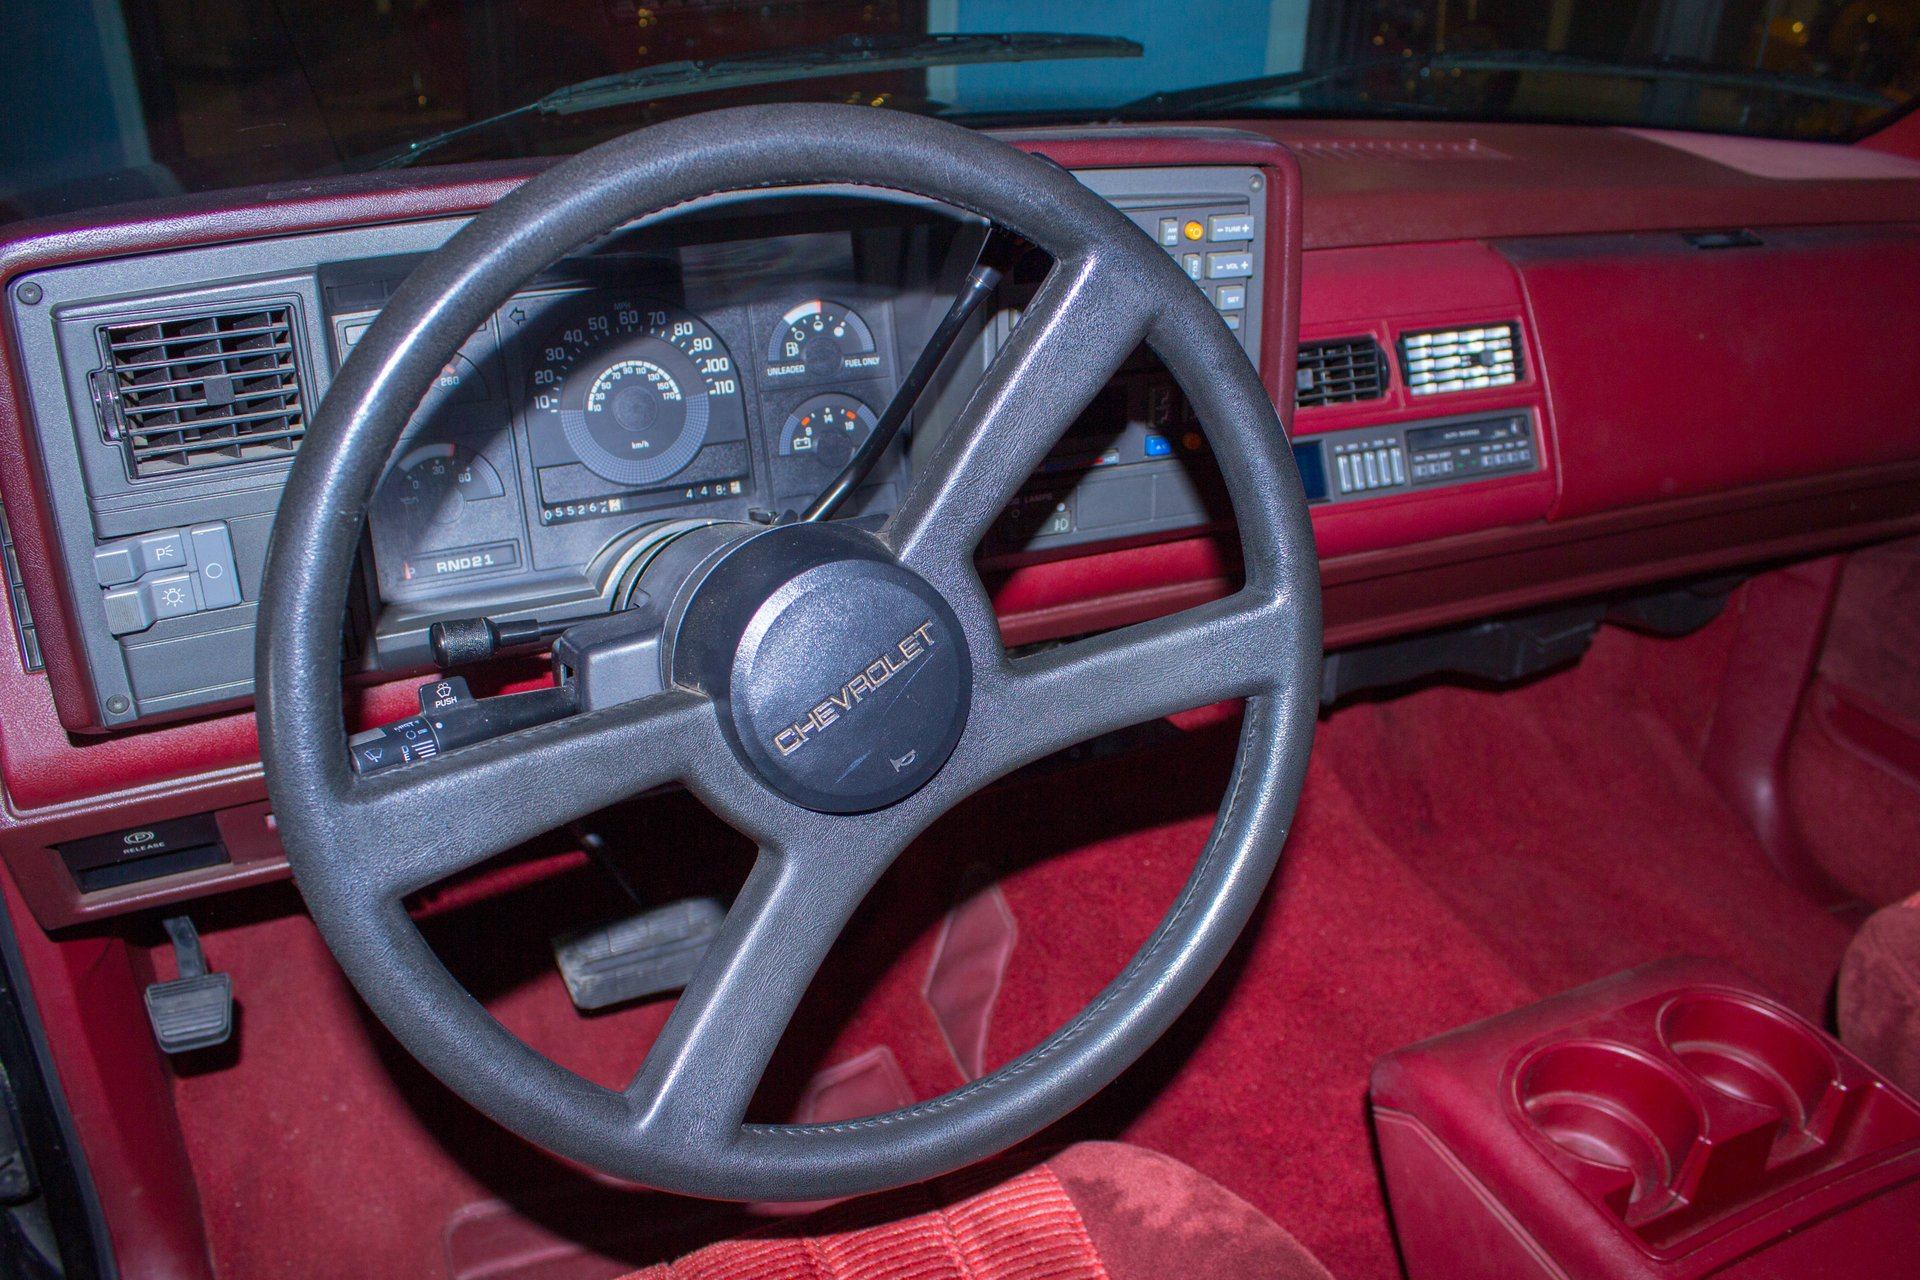 1990 Chevrolet 454 SS | Classic Cars & Used Cars For Sale in Tampa, FL